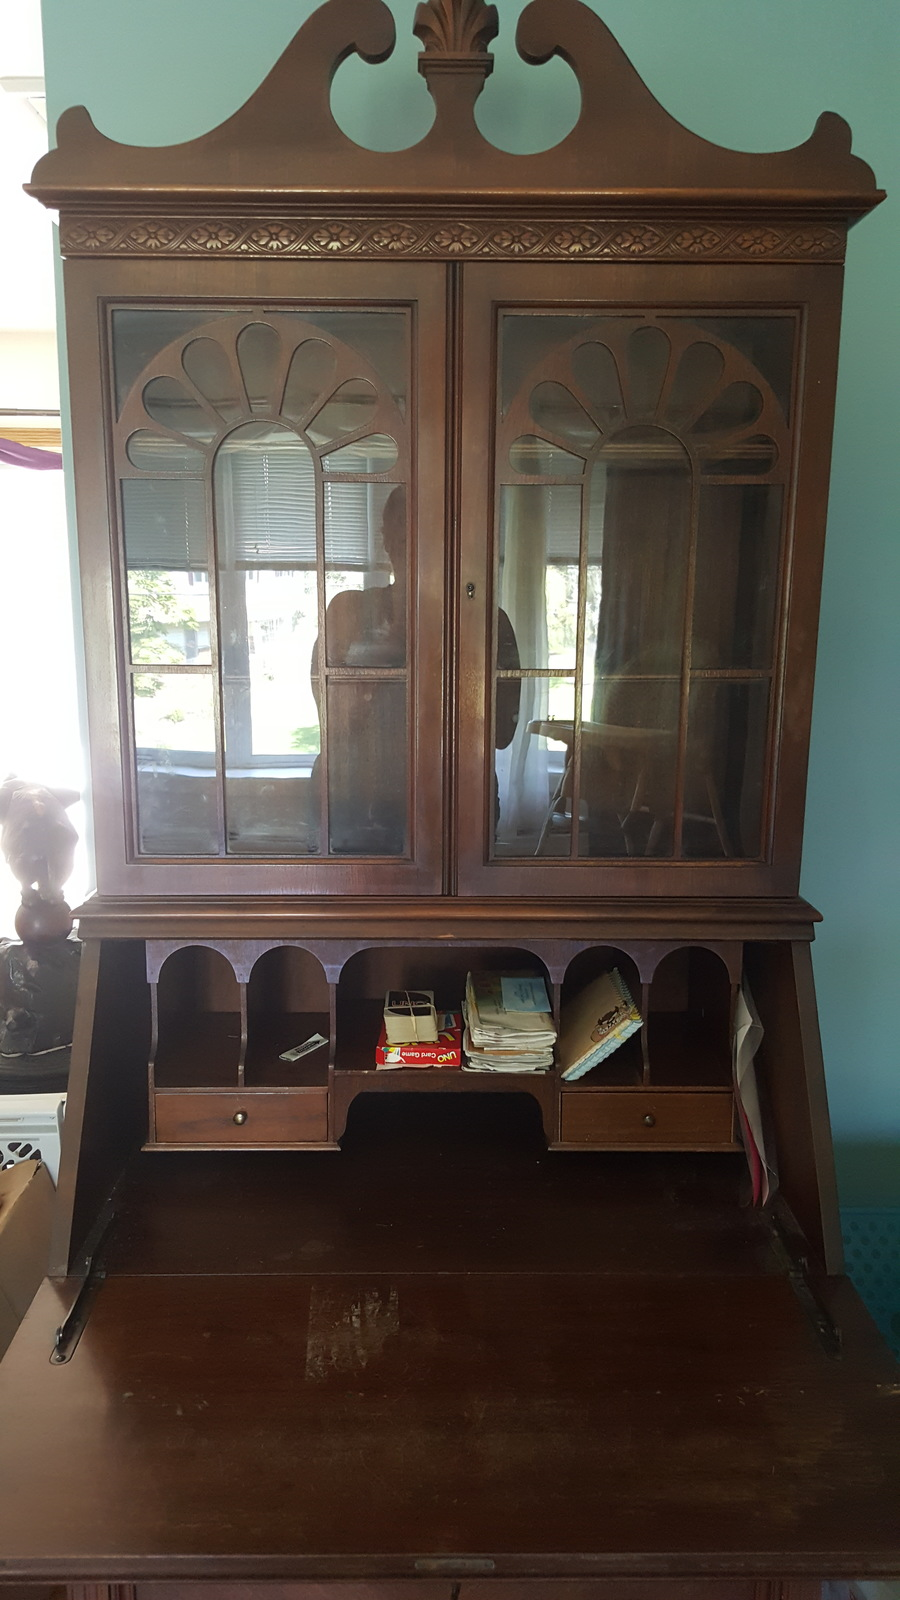 Lookup A Number >> Rockford Secretary | My Antique Furniture Collection